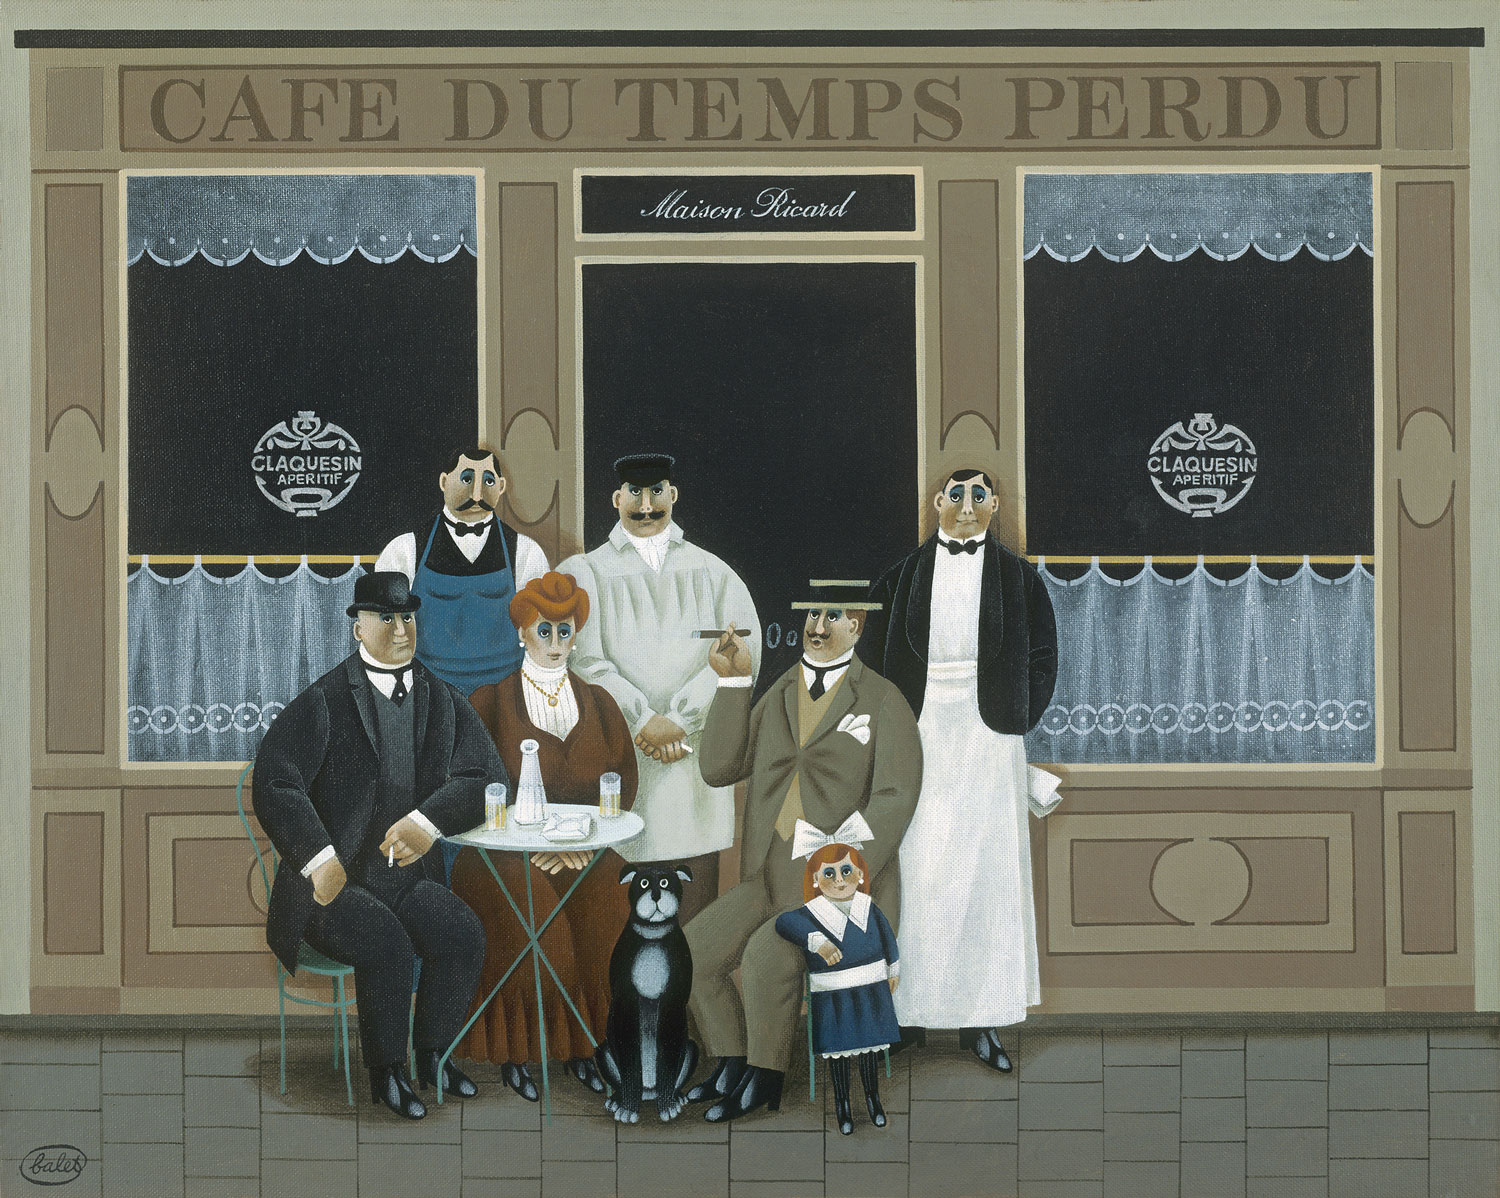 Cafe du Temps Perdu (Cafe of Time Lost)